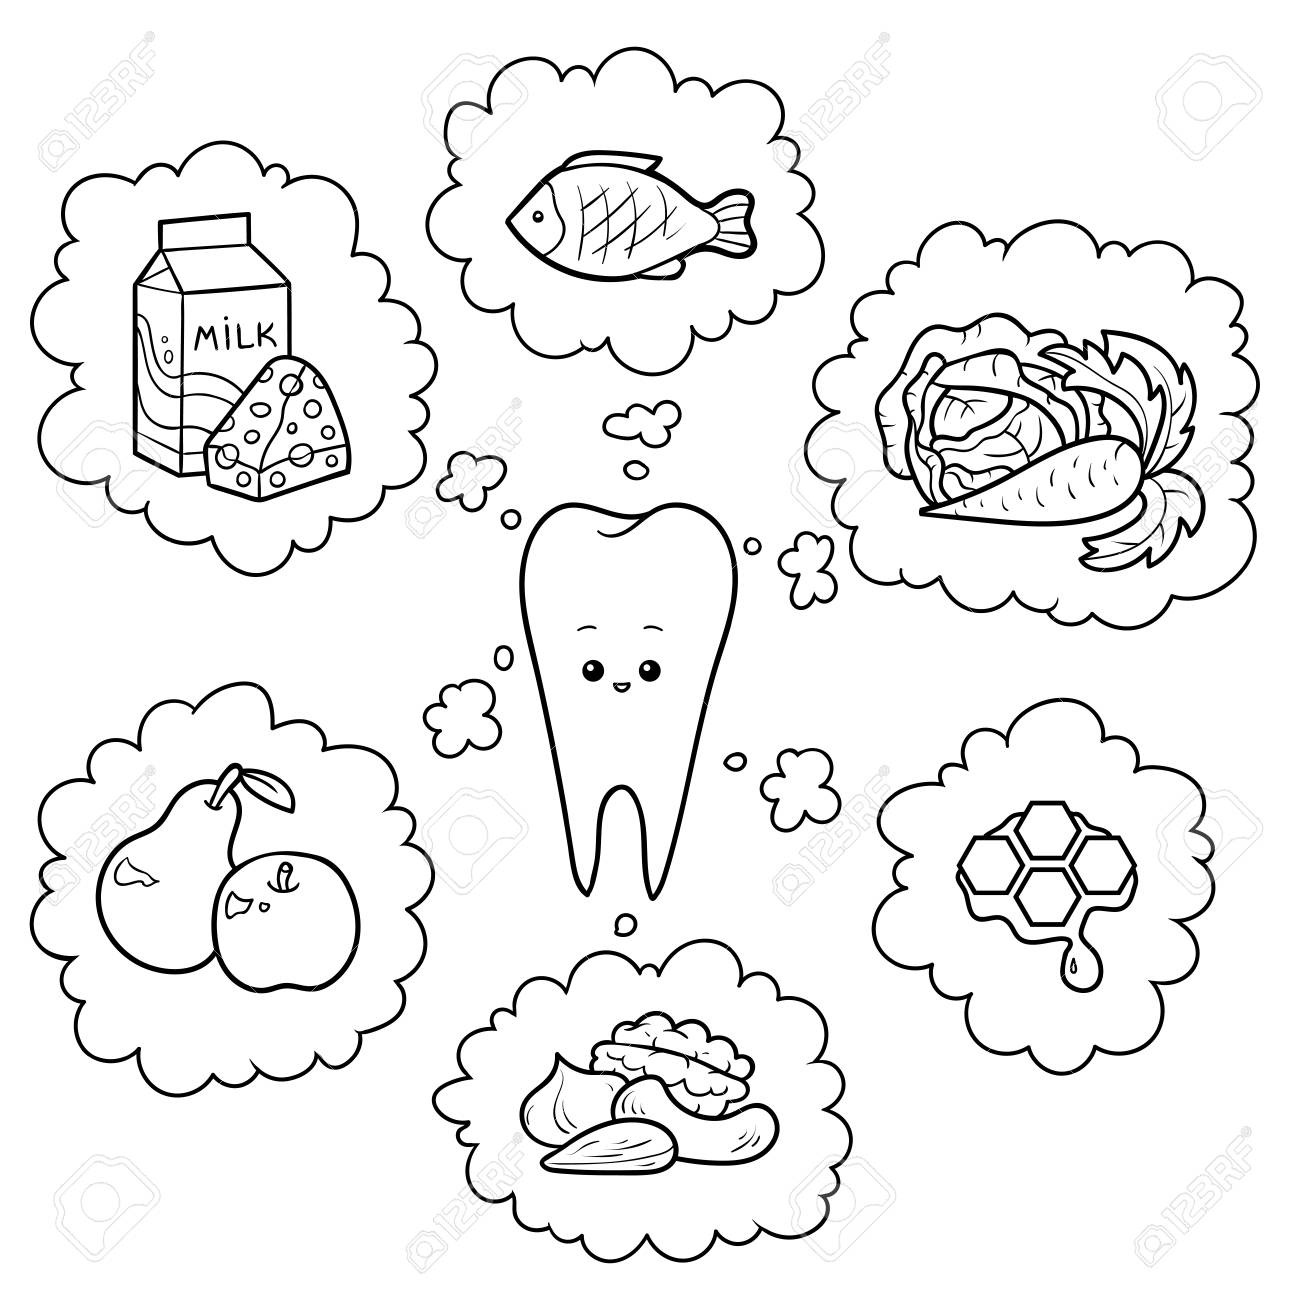 Black And White Cartoon Illustration Good Food For Teeth Educational Royalty Free Cliparts Vectors And Stock Illustration Image 126352997